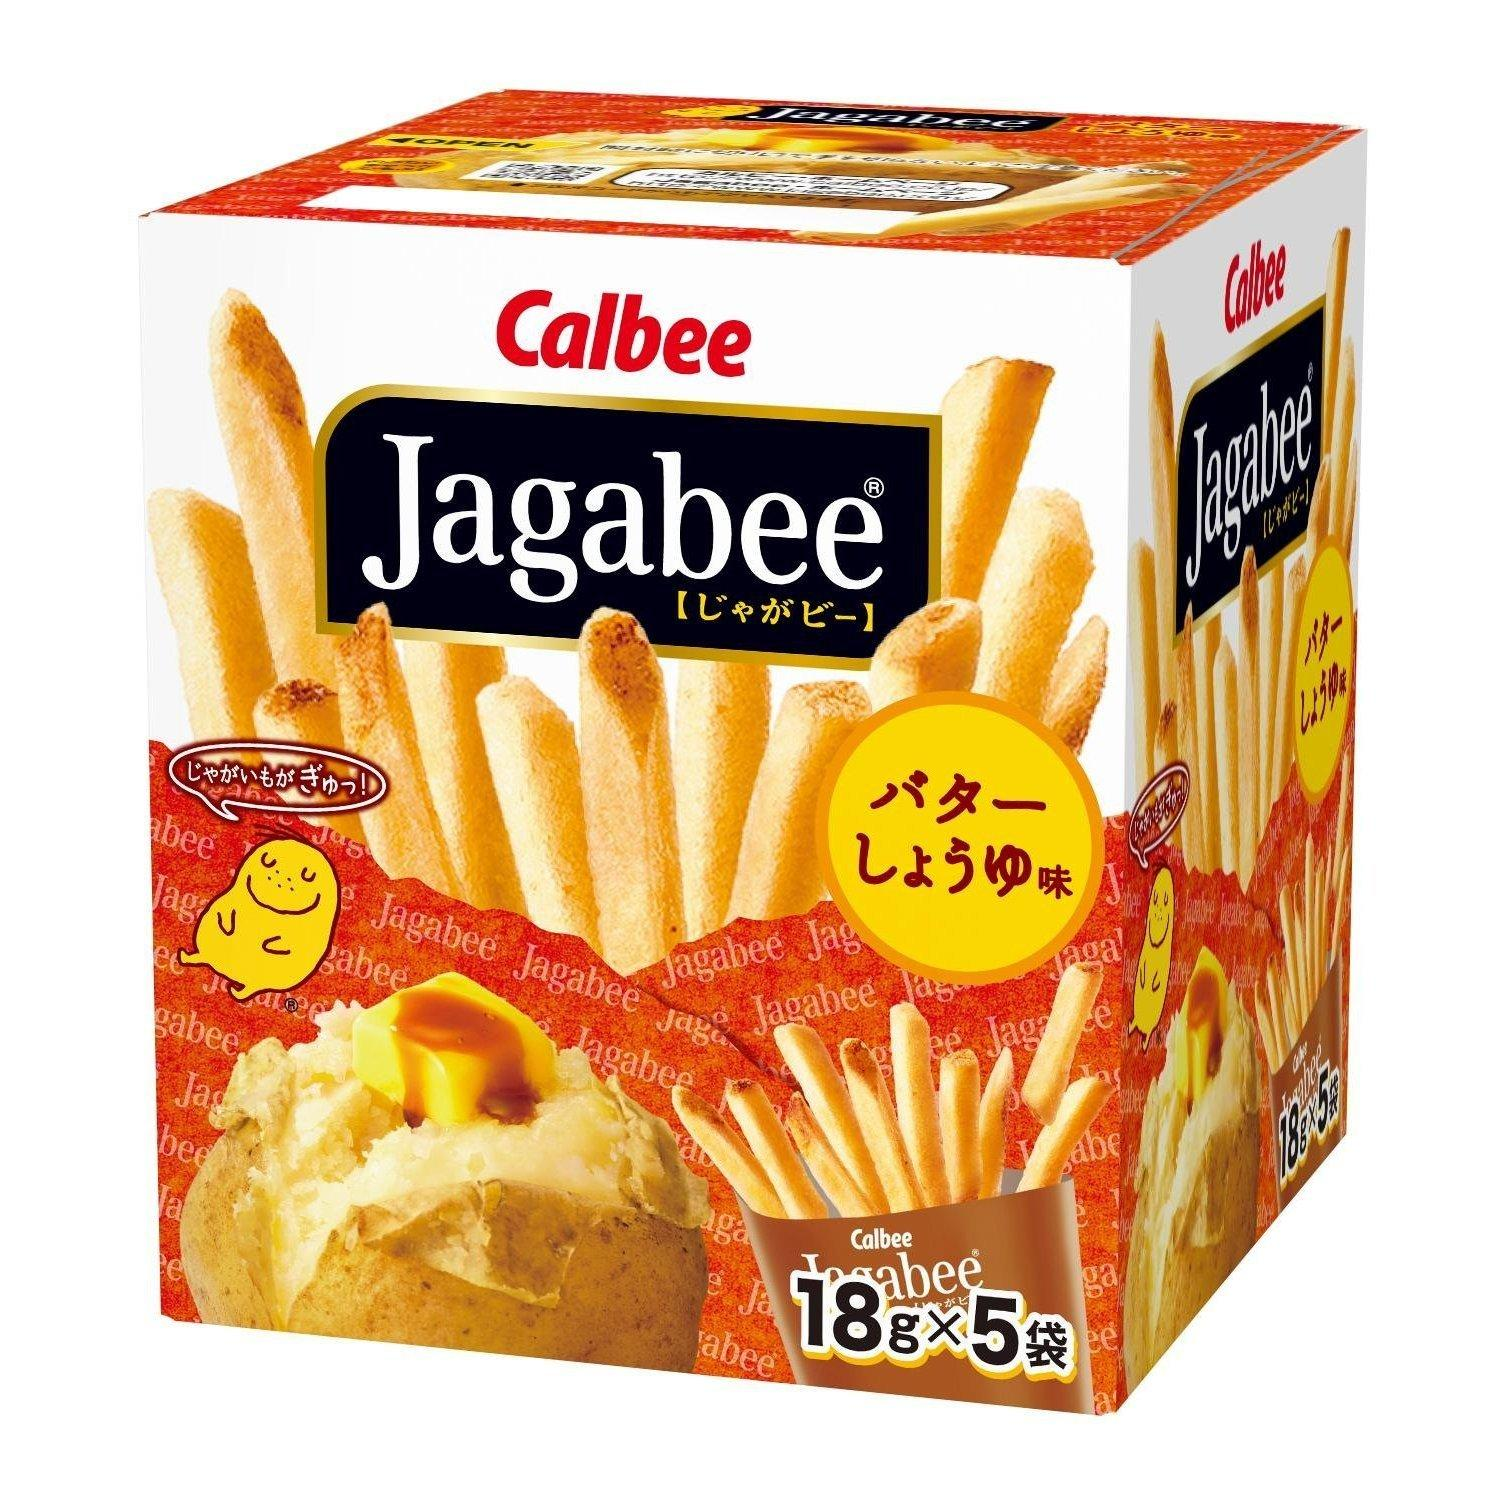 $5.49 Calbee Potato Sticks -- Jagabee @ Amazon.com